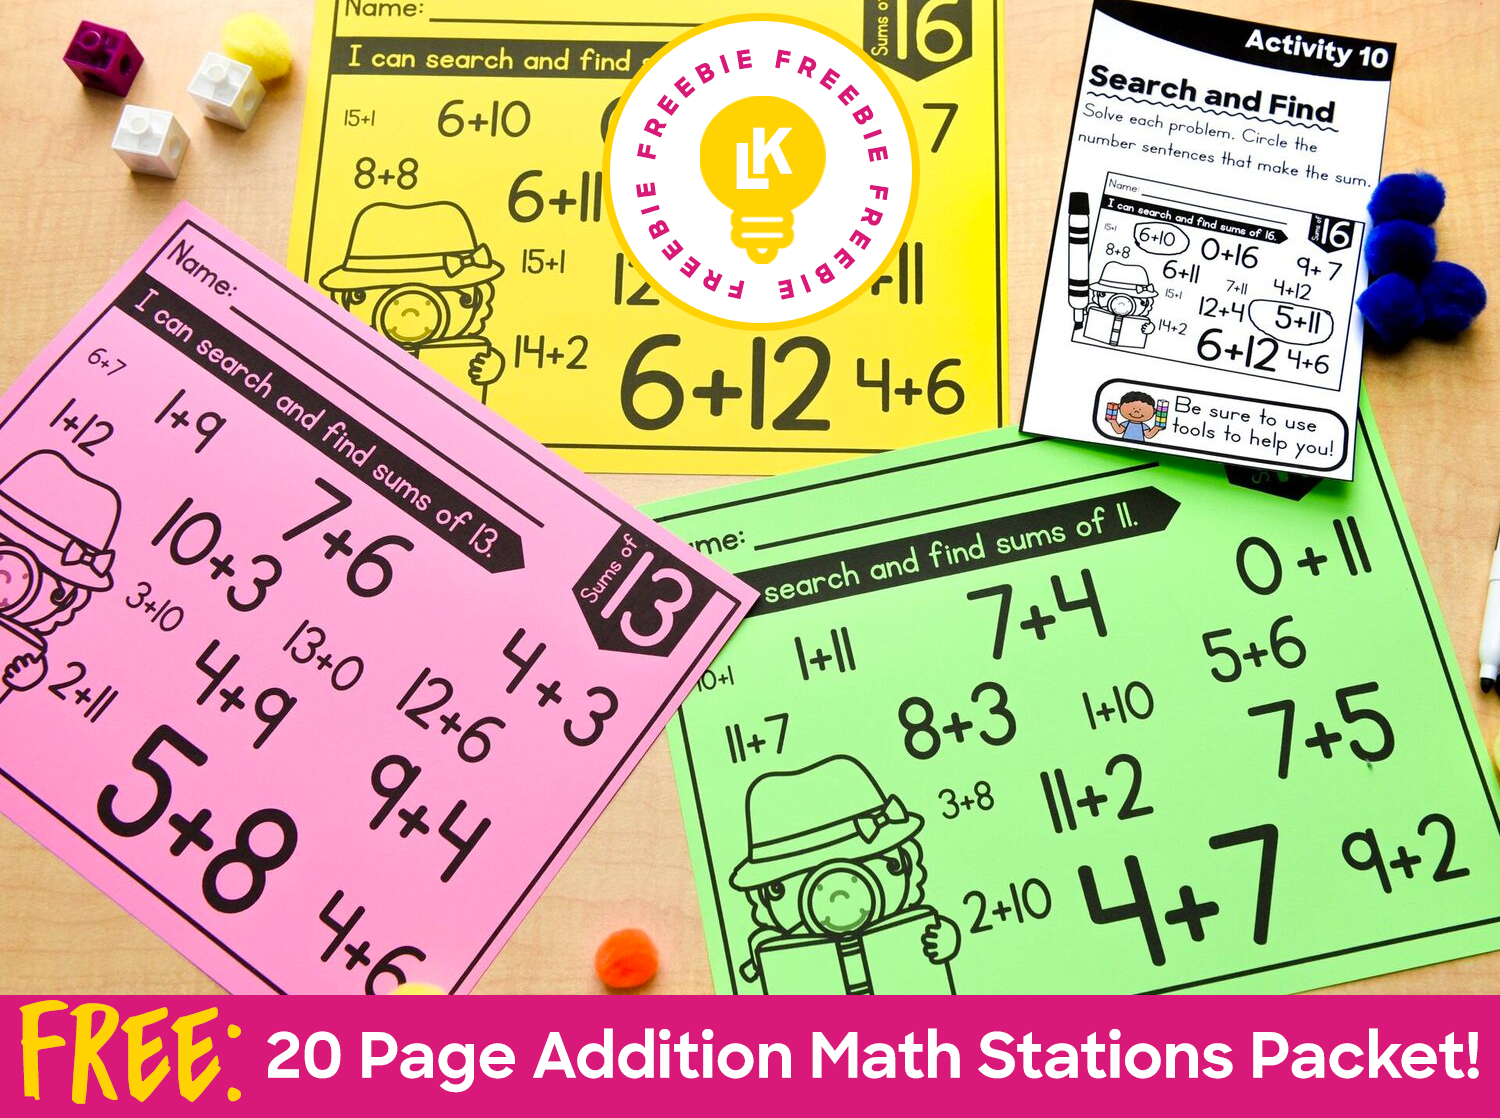 Free 20 Page Addition Math Stations Packet From My Hands On Math Bundle